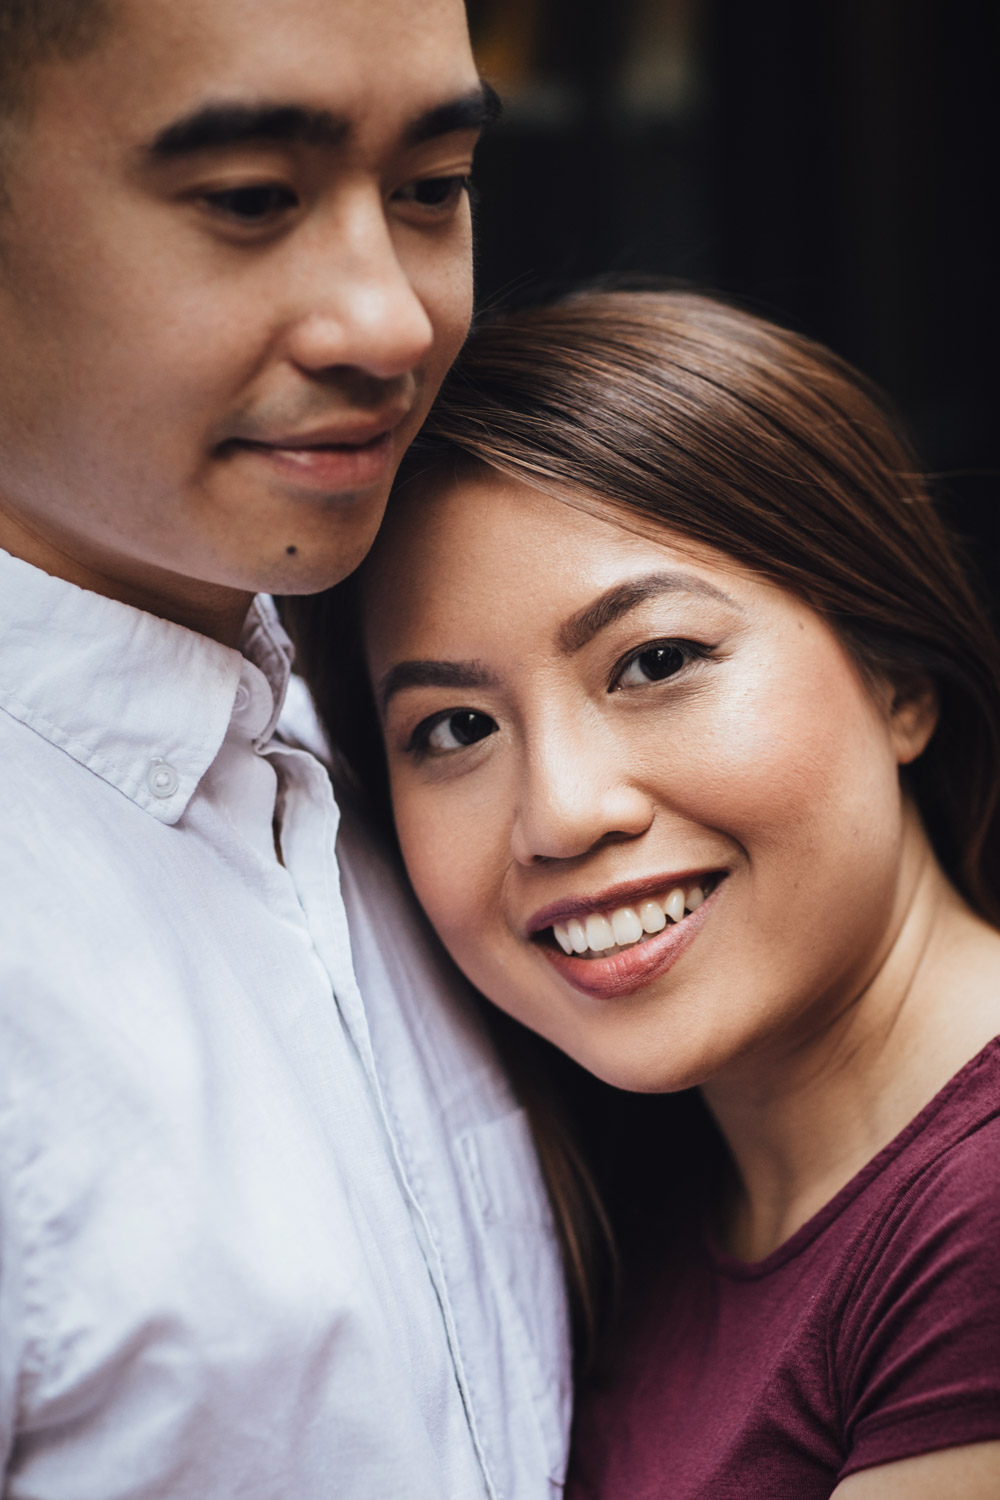 engagement portraits in gastown vancouver bc